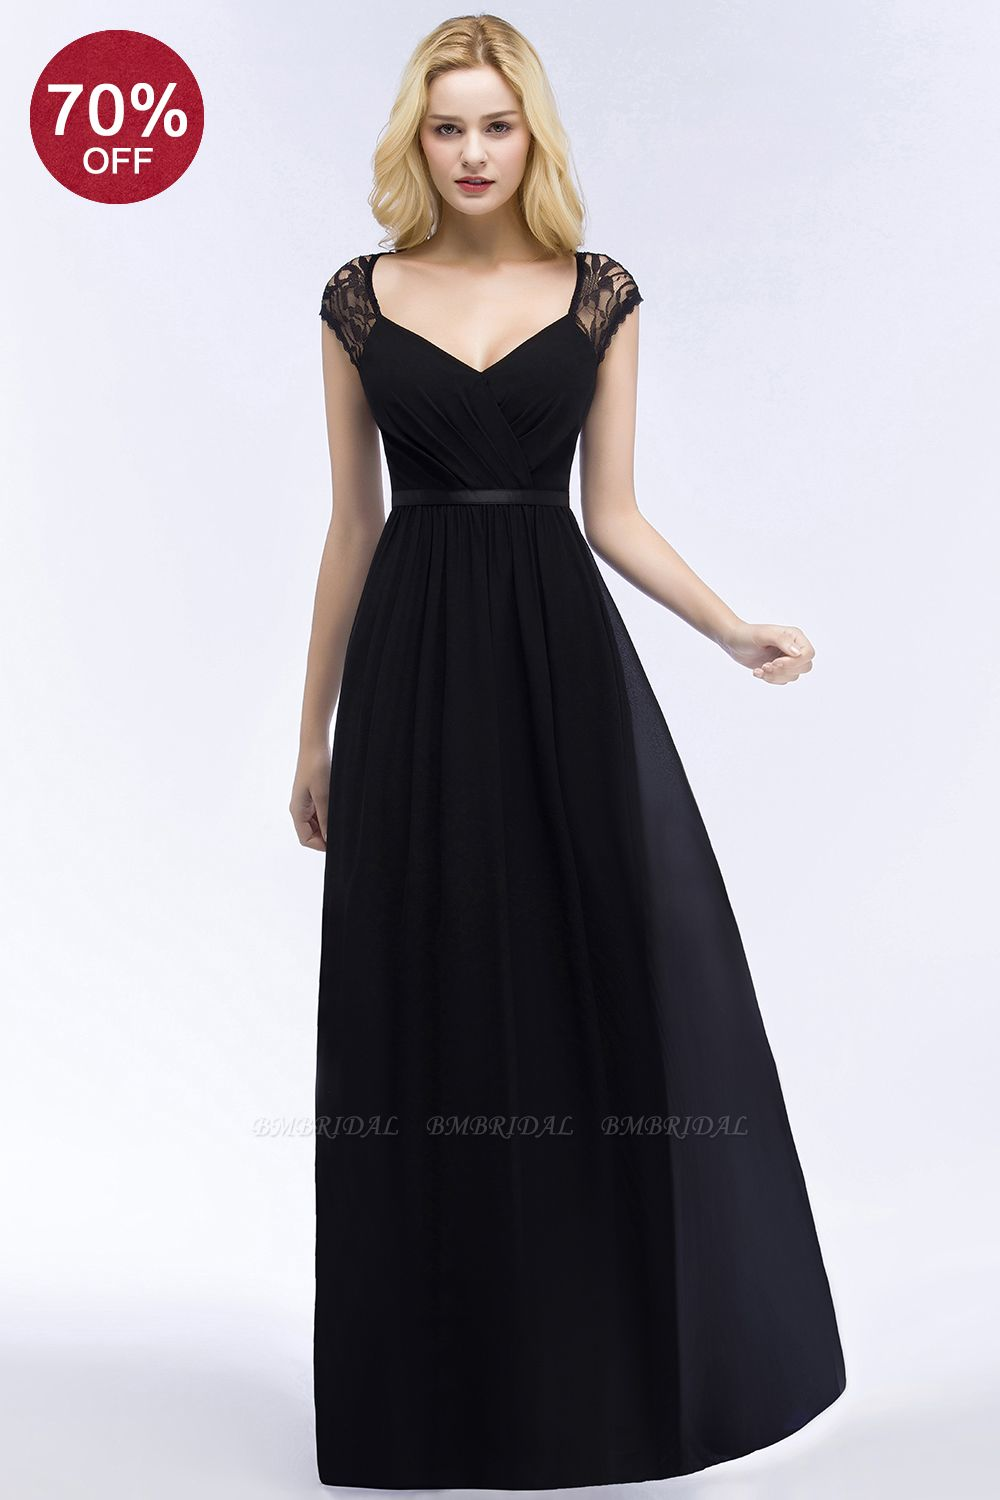 BMbridal Elegant A-line Chiffon Lace V-neck Long Affordable Bridesmaid Dresses In Stock